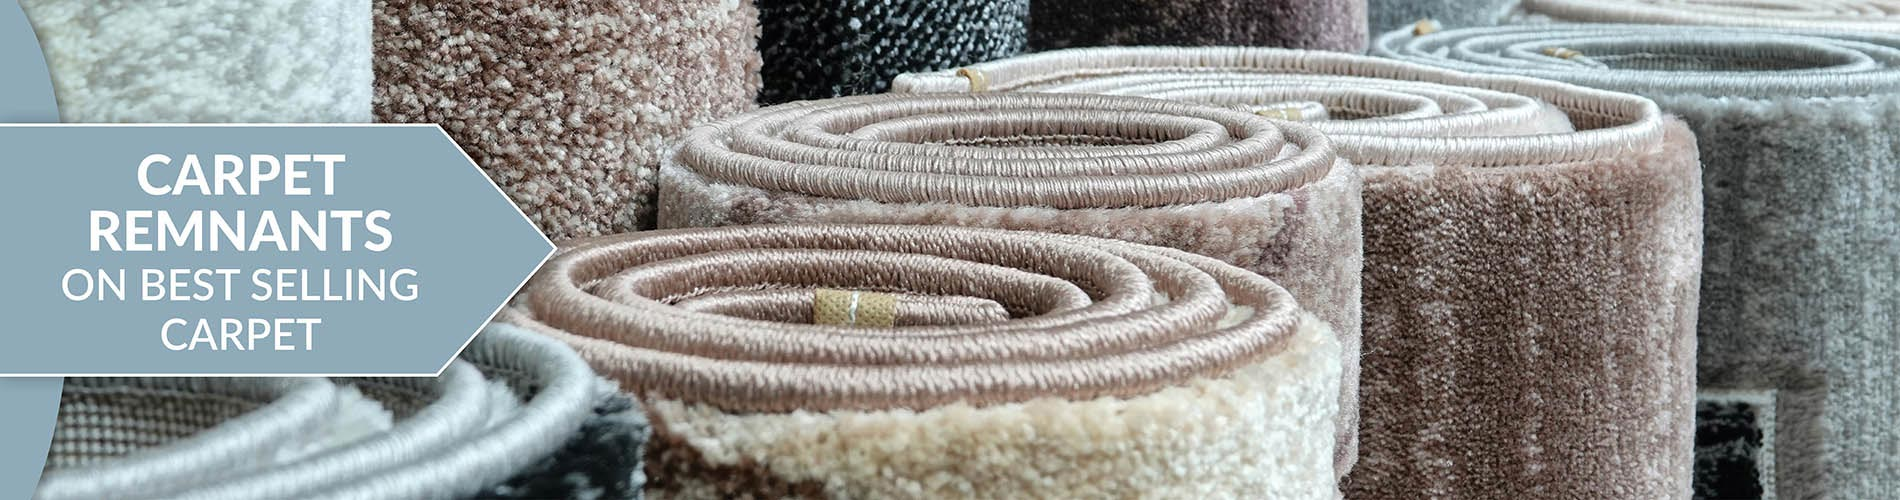 Carpet Remnants on sale at Floor Express in Tumwater